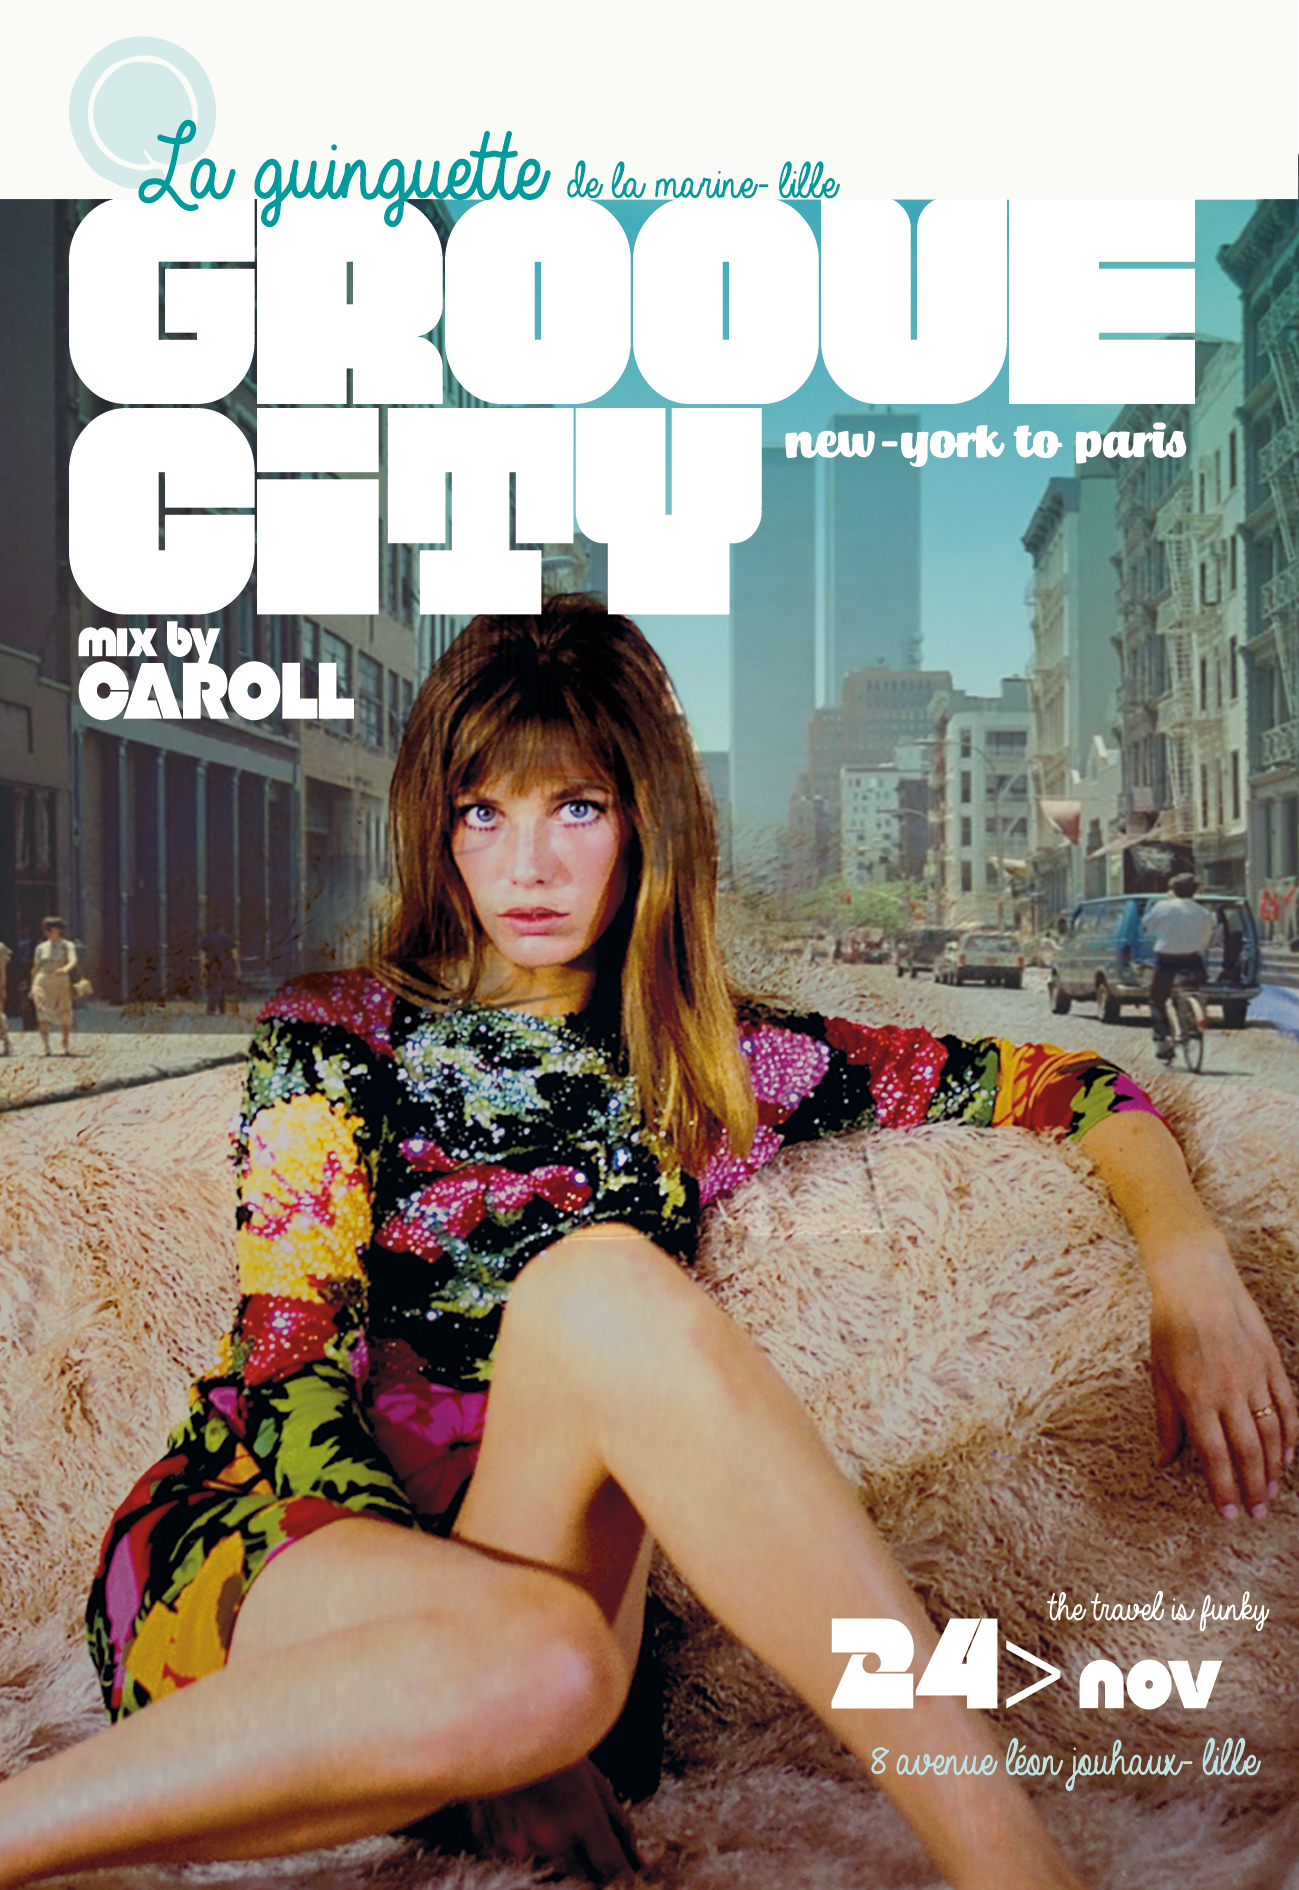 Groove City Mix by Caroll 100% vinyle